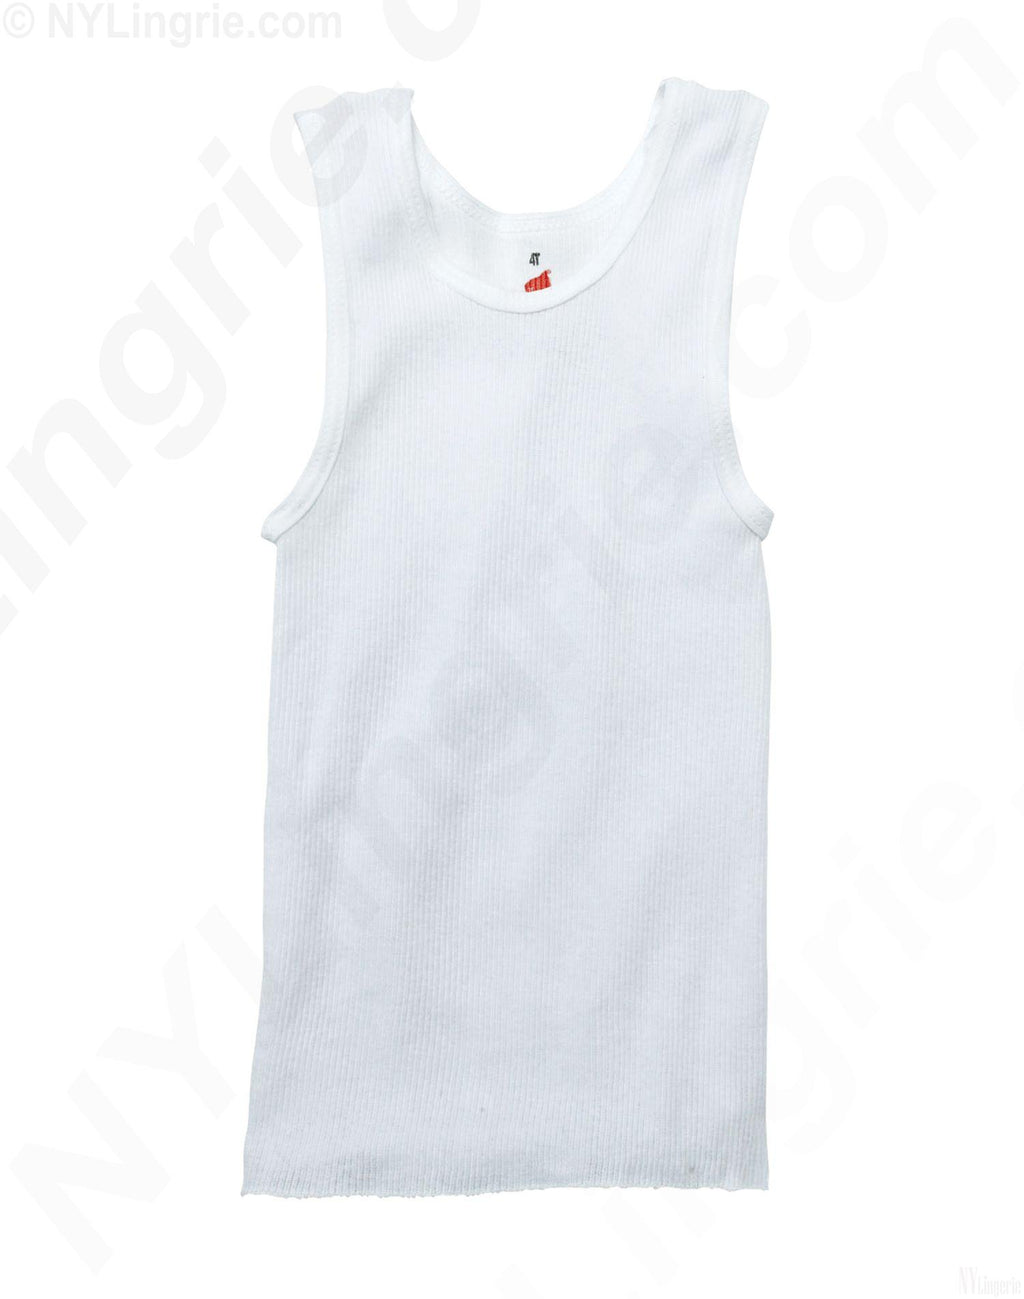 Hanes Boys' Toddler Tank Top 5 Pack